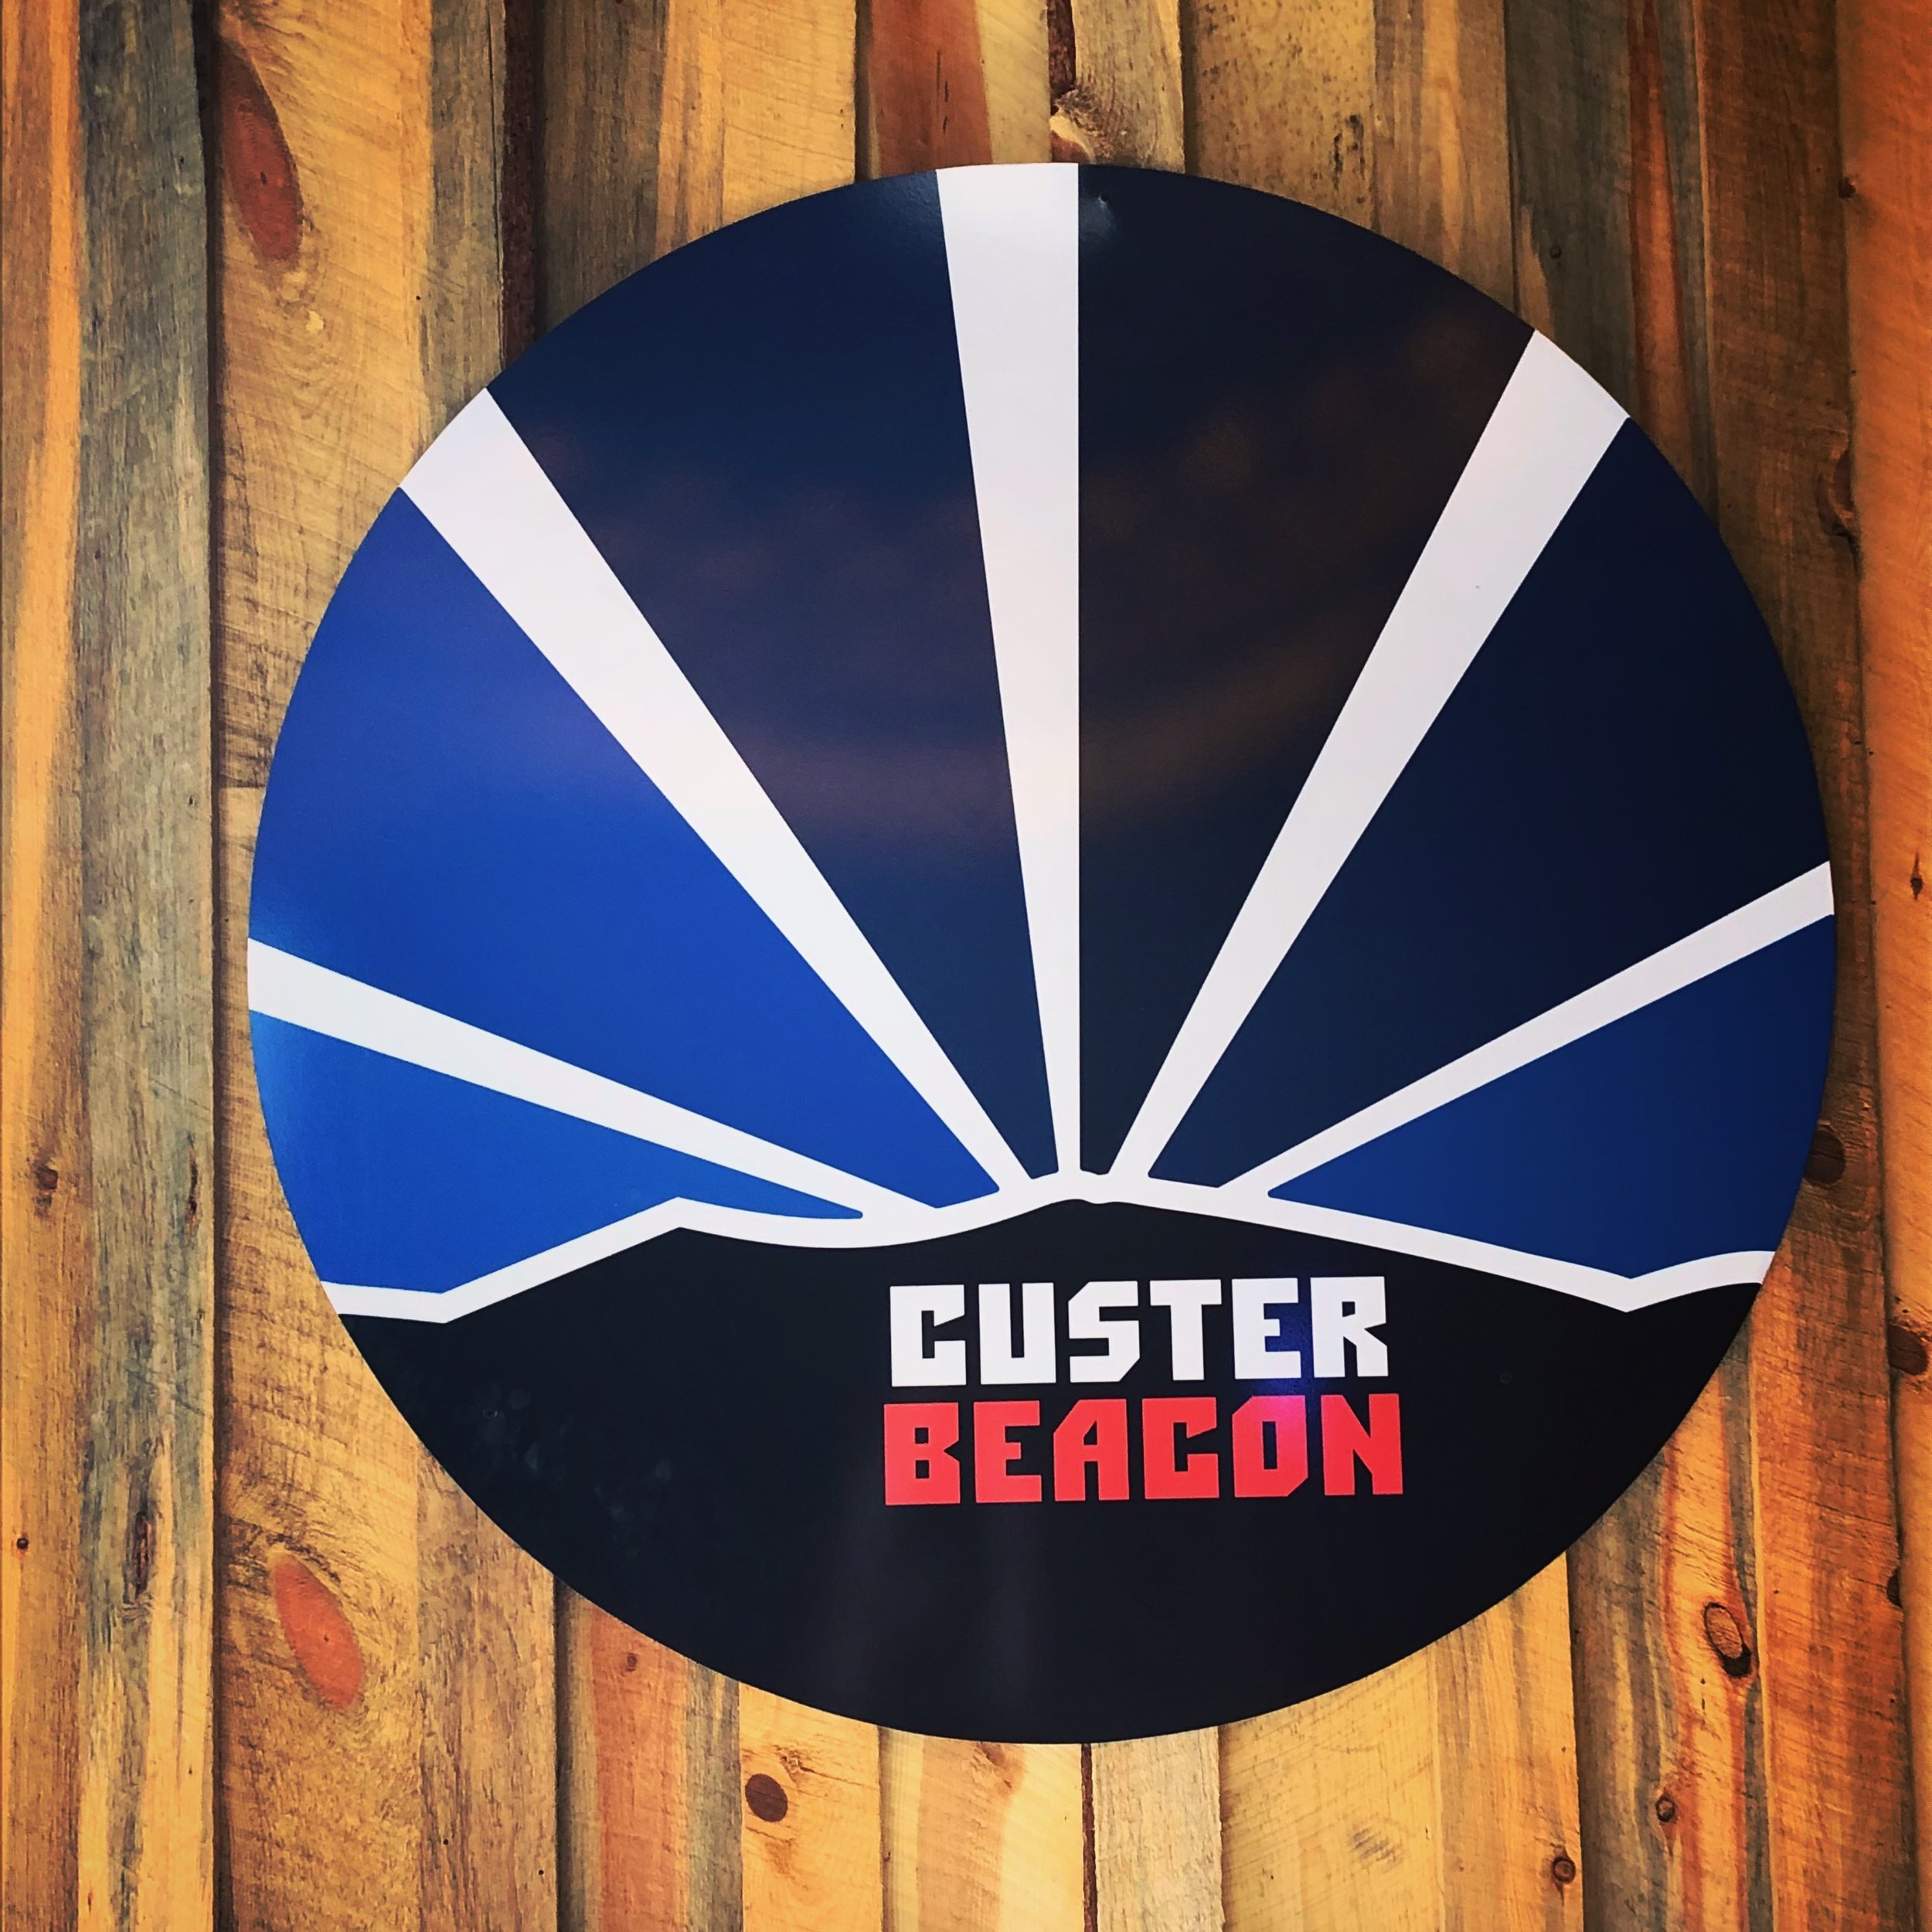 Beacon sign on wood.jpg